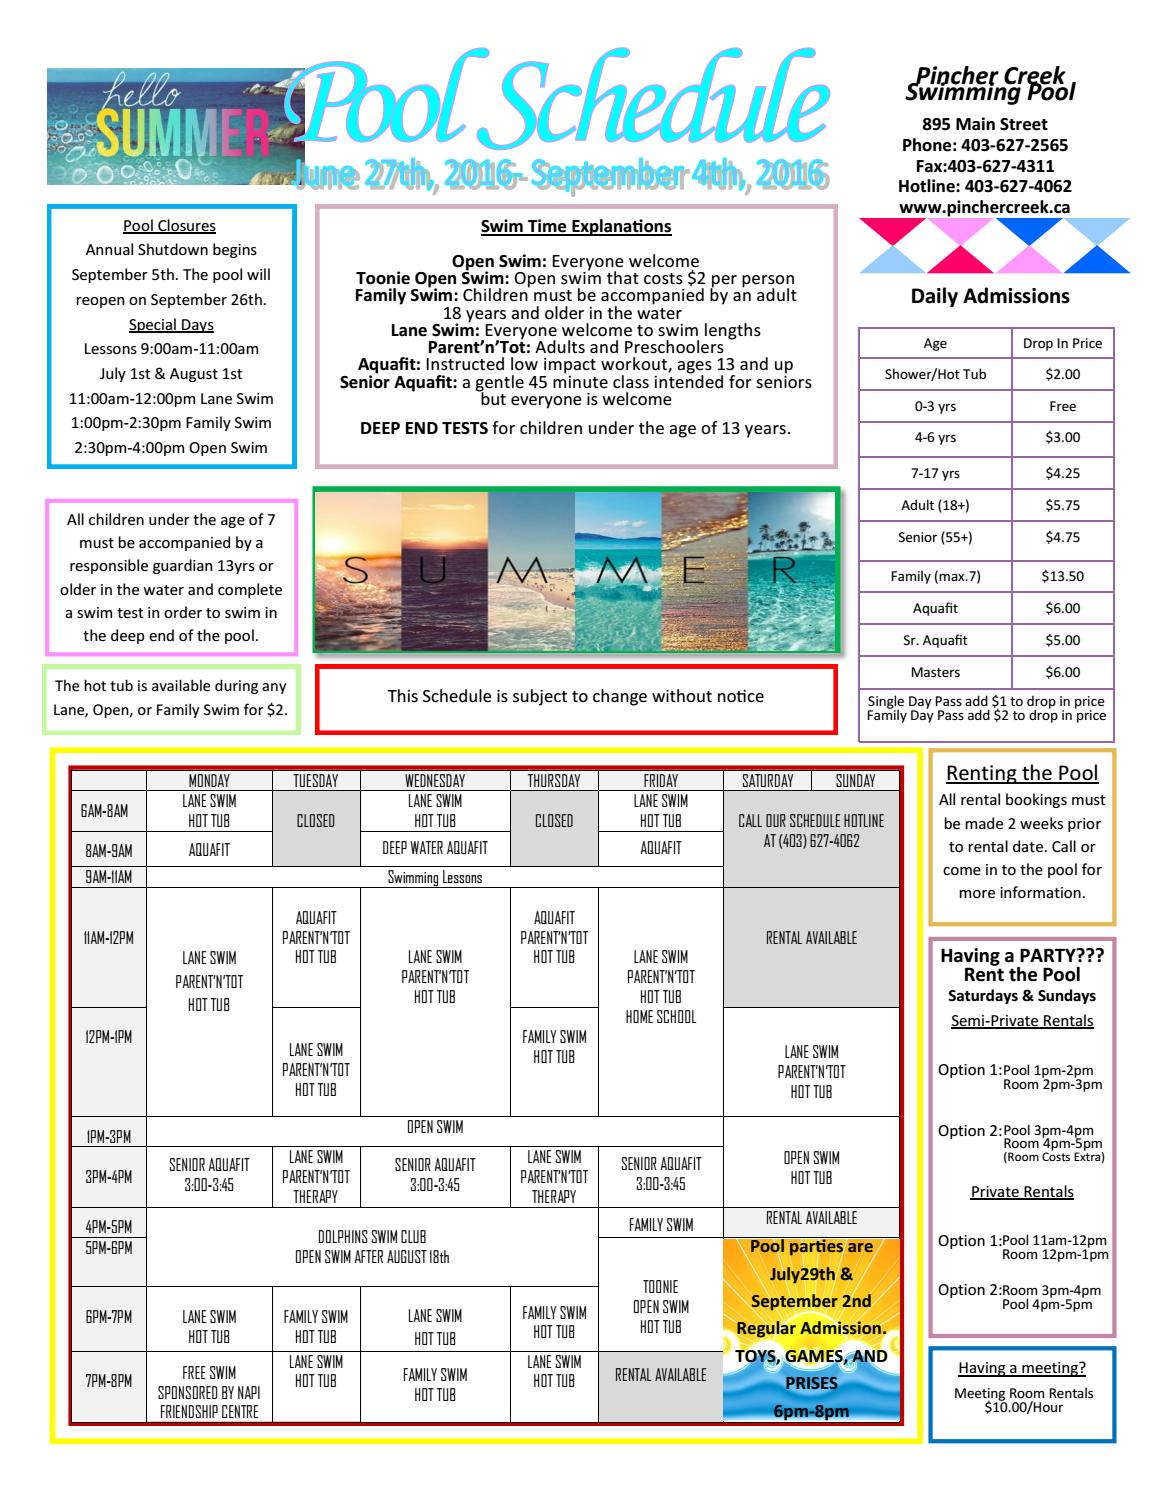 Summer schedule june 27 sept 4th by town of pincher creek issuu for Pincher creek swimming pool schedule